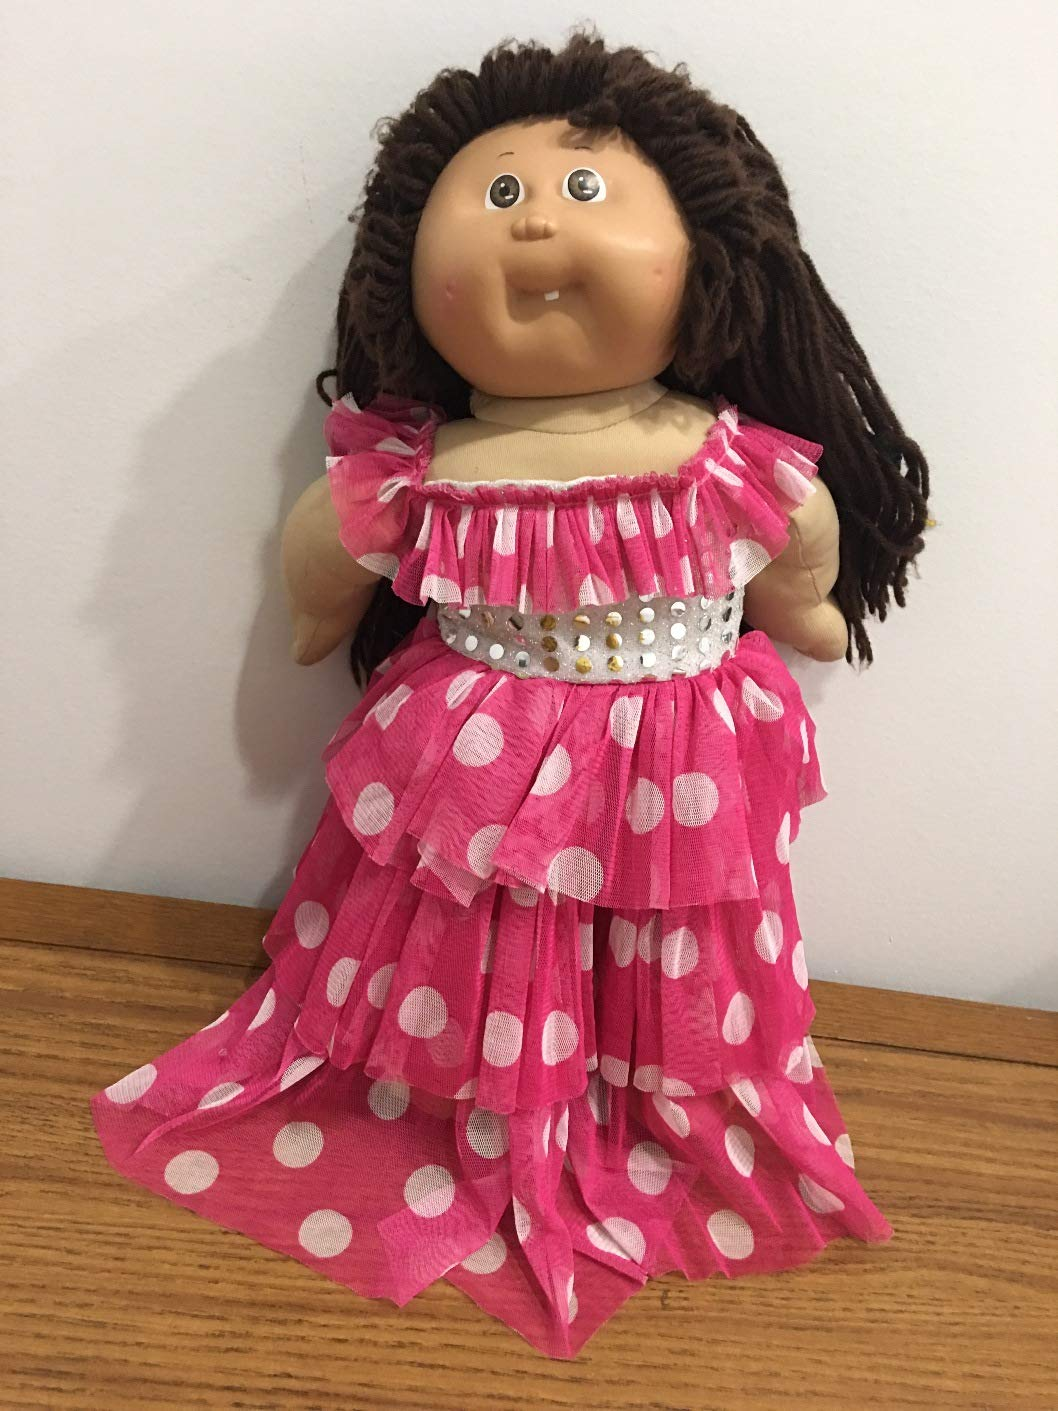 Cabbage Patch Doll Clothes Black Skirt No Doll